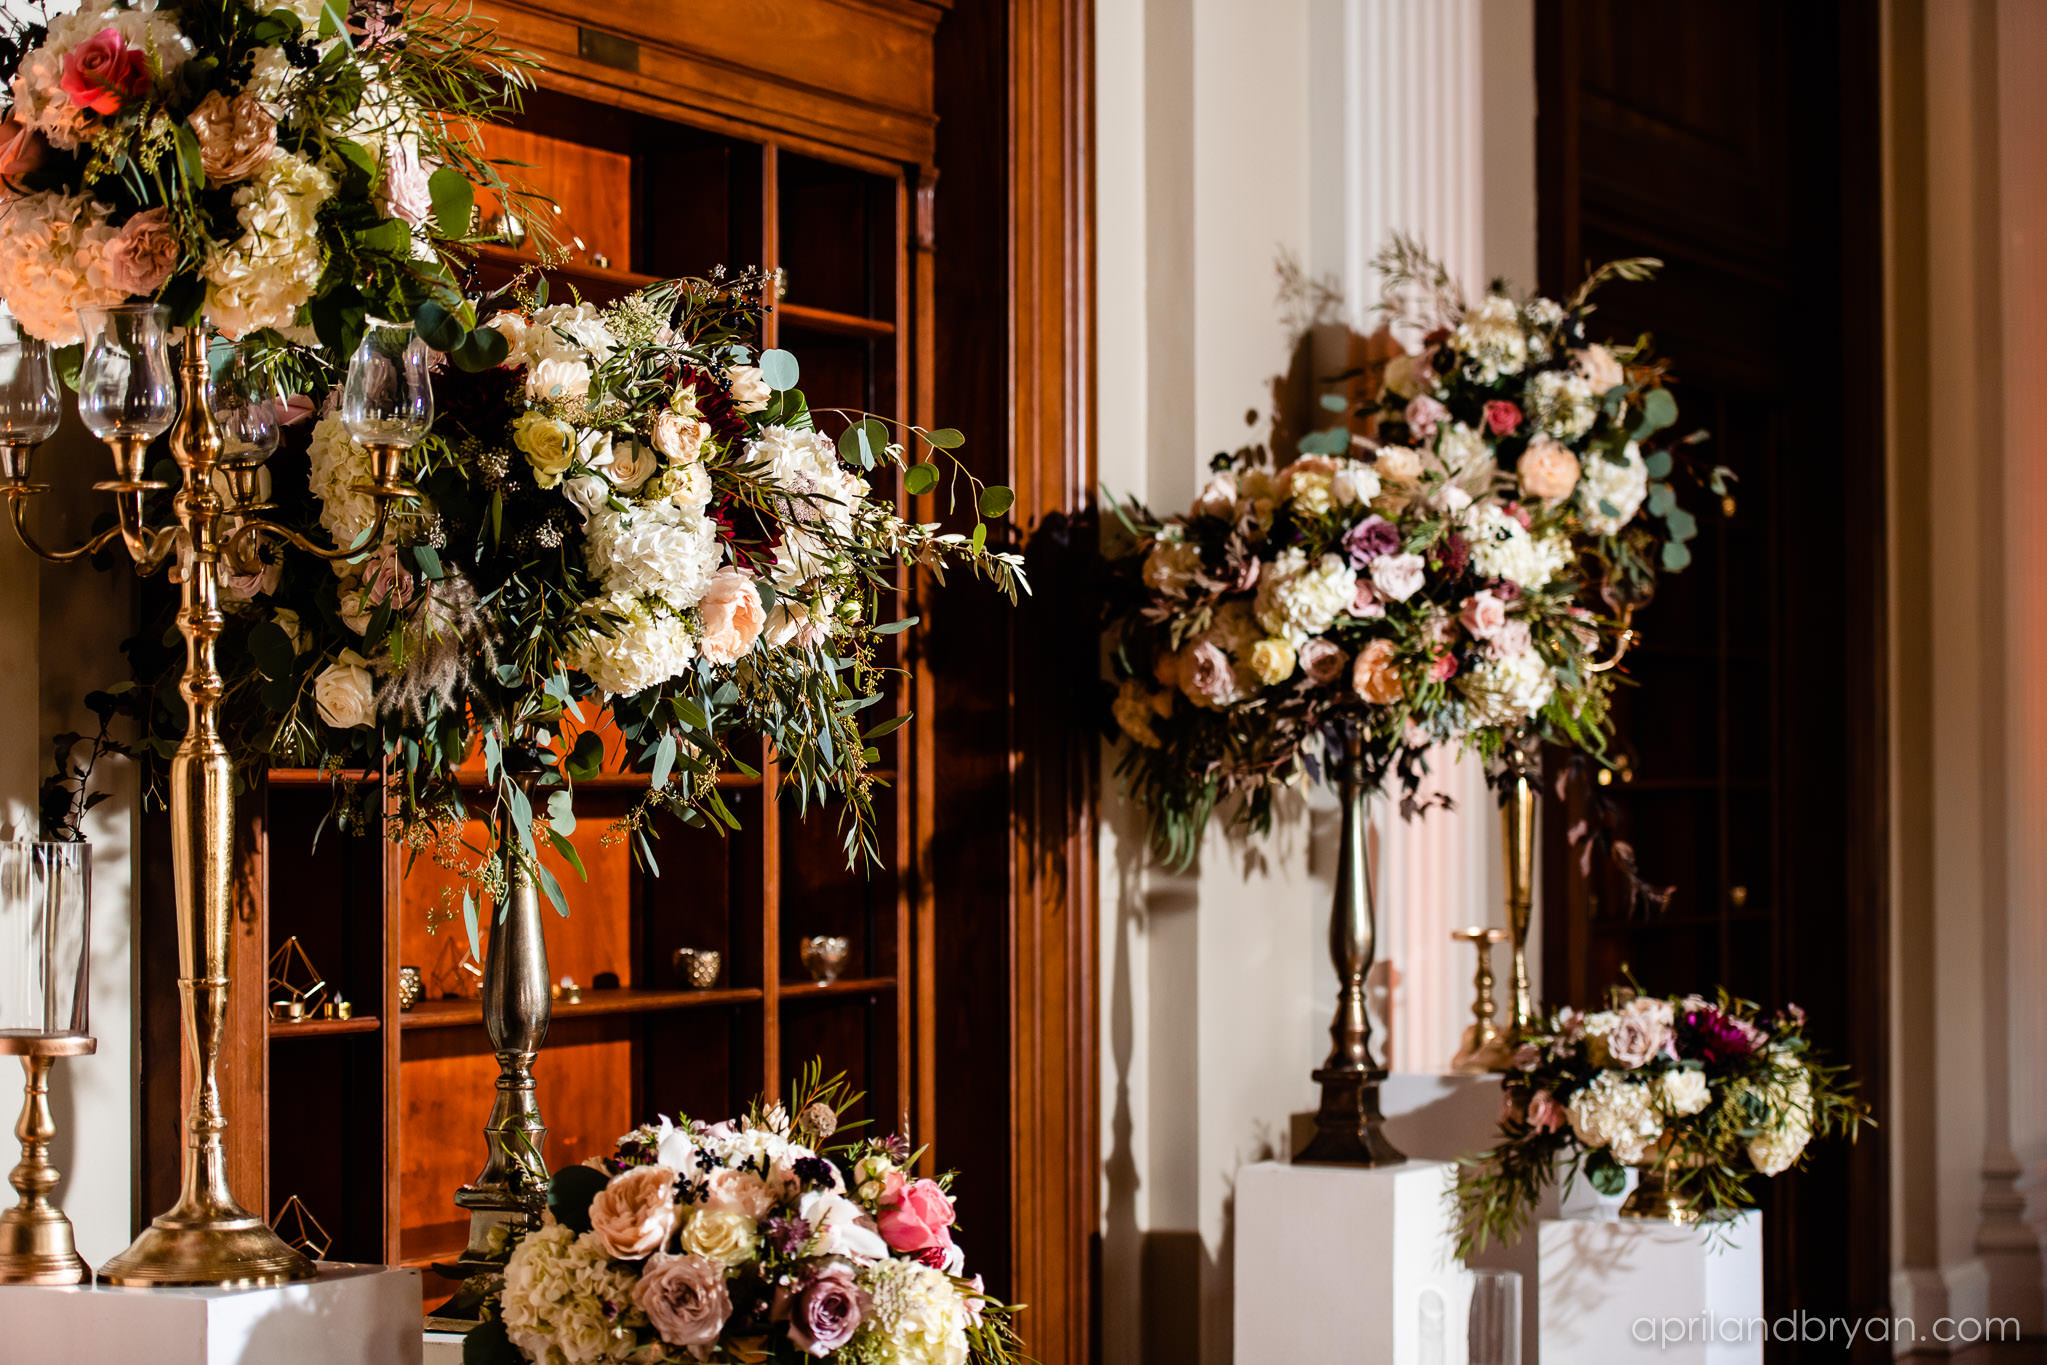 Elegant floral arrangements at the Franklin Institute of philadlephia were so flawlessly showcased by April & Bryan Photography. Featured on Dream Weddings.